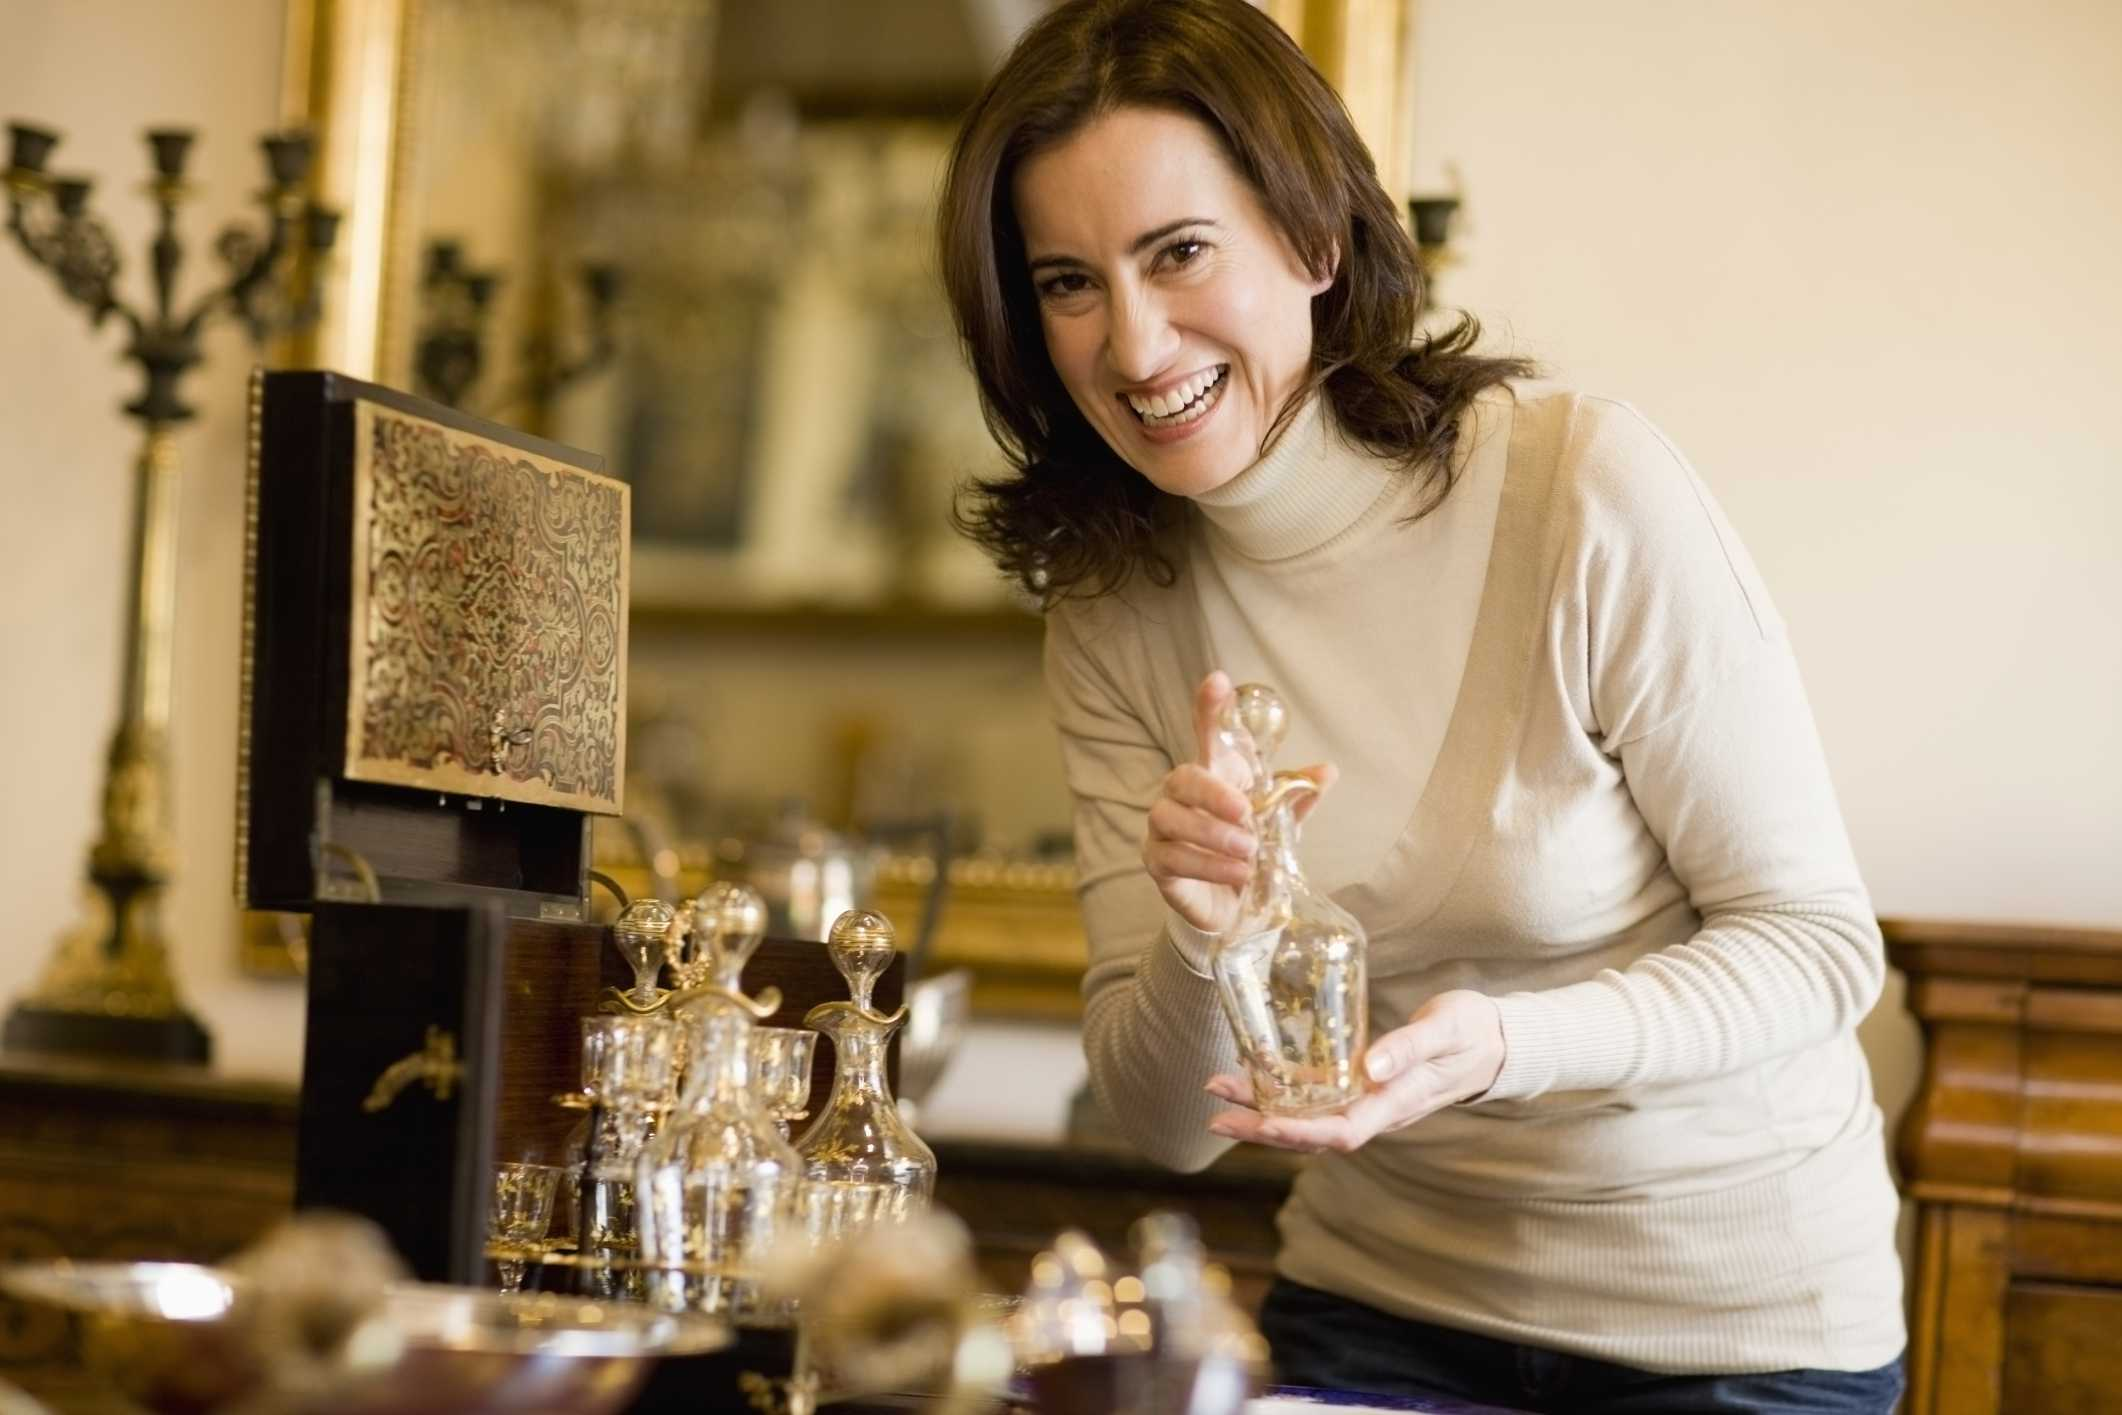 woman browsing antiques at an estate sale